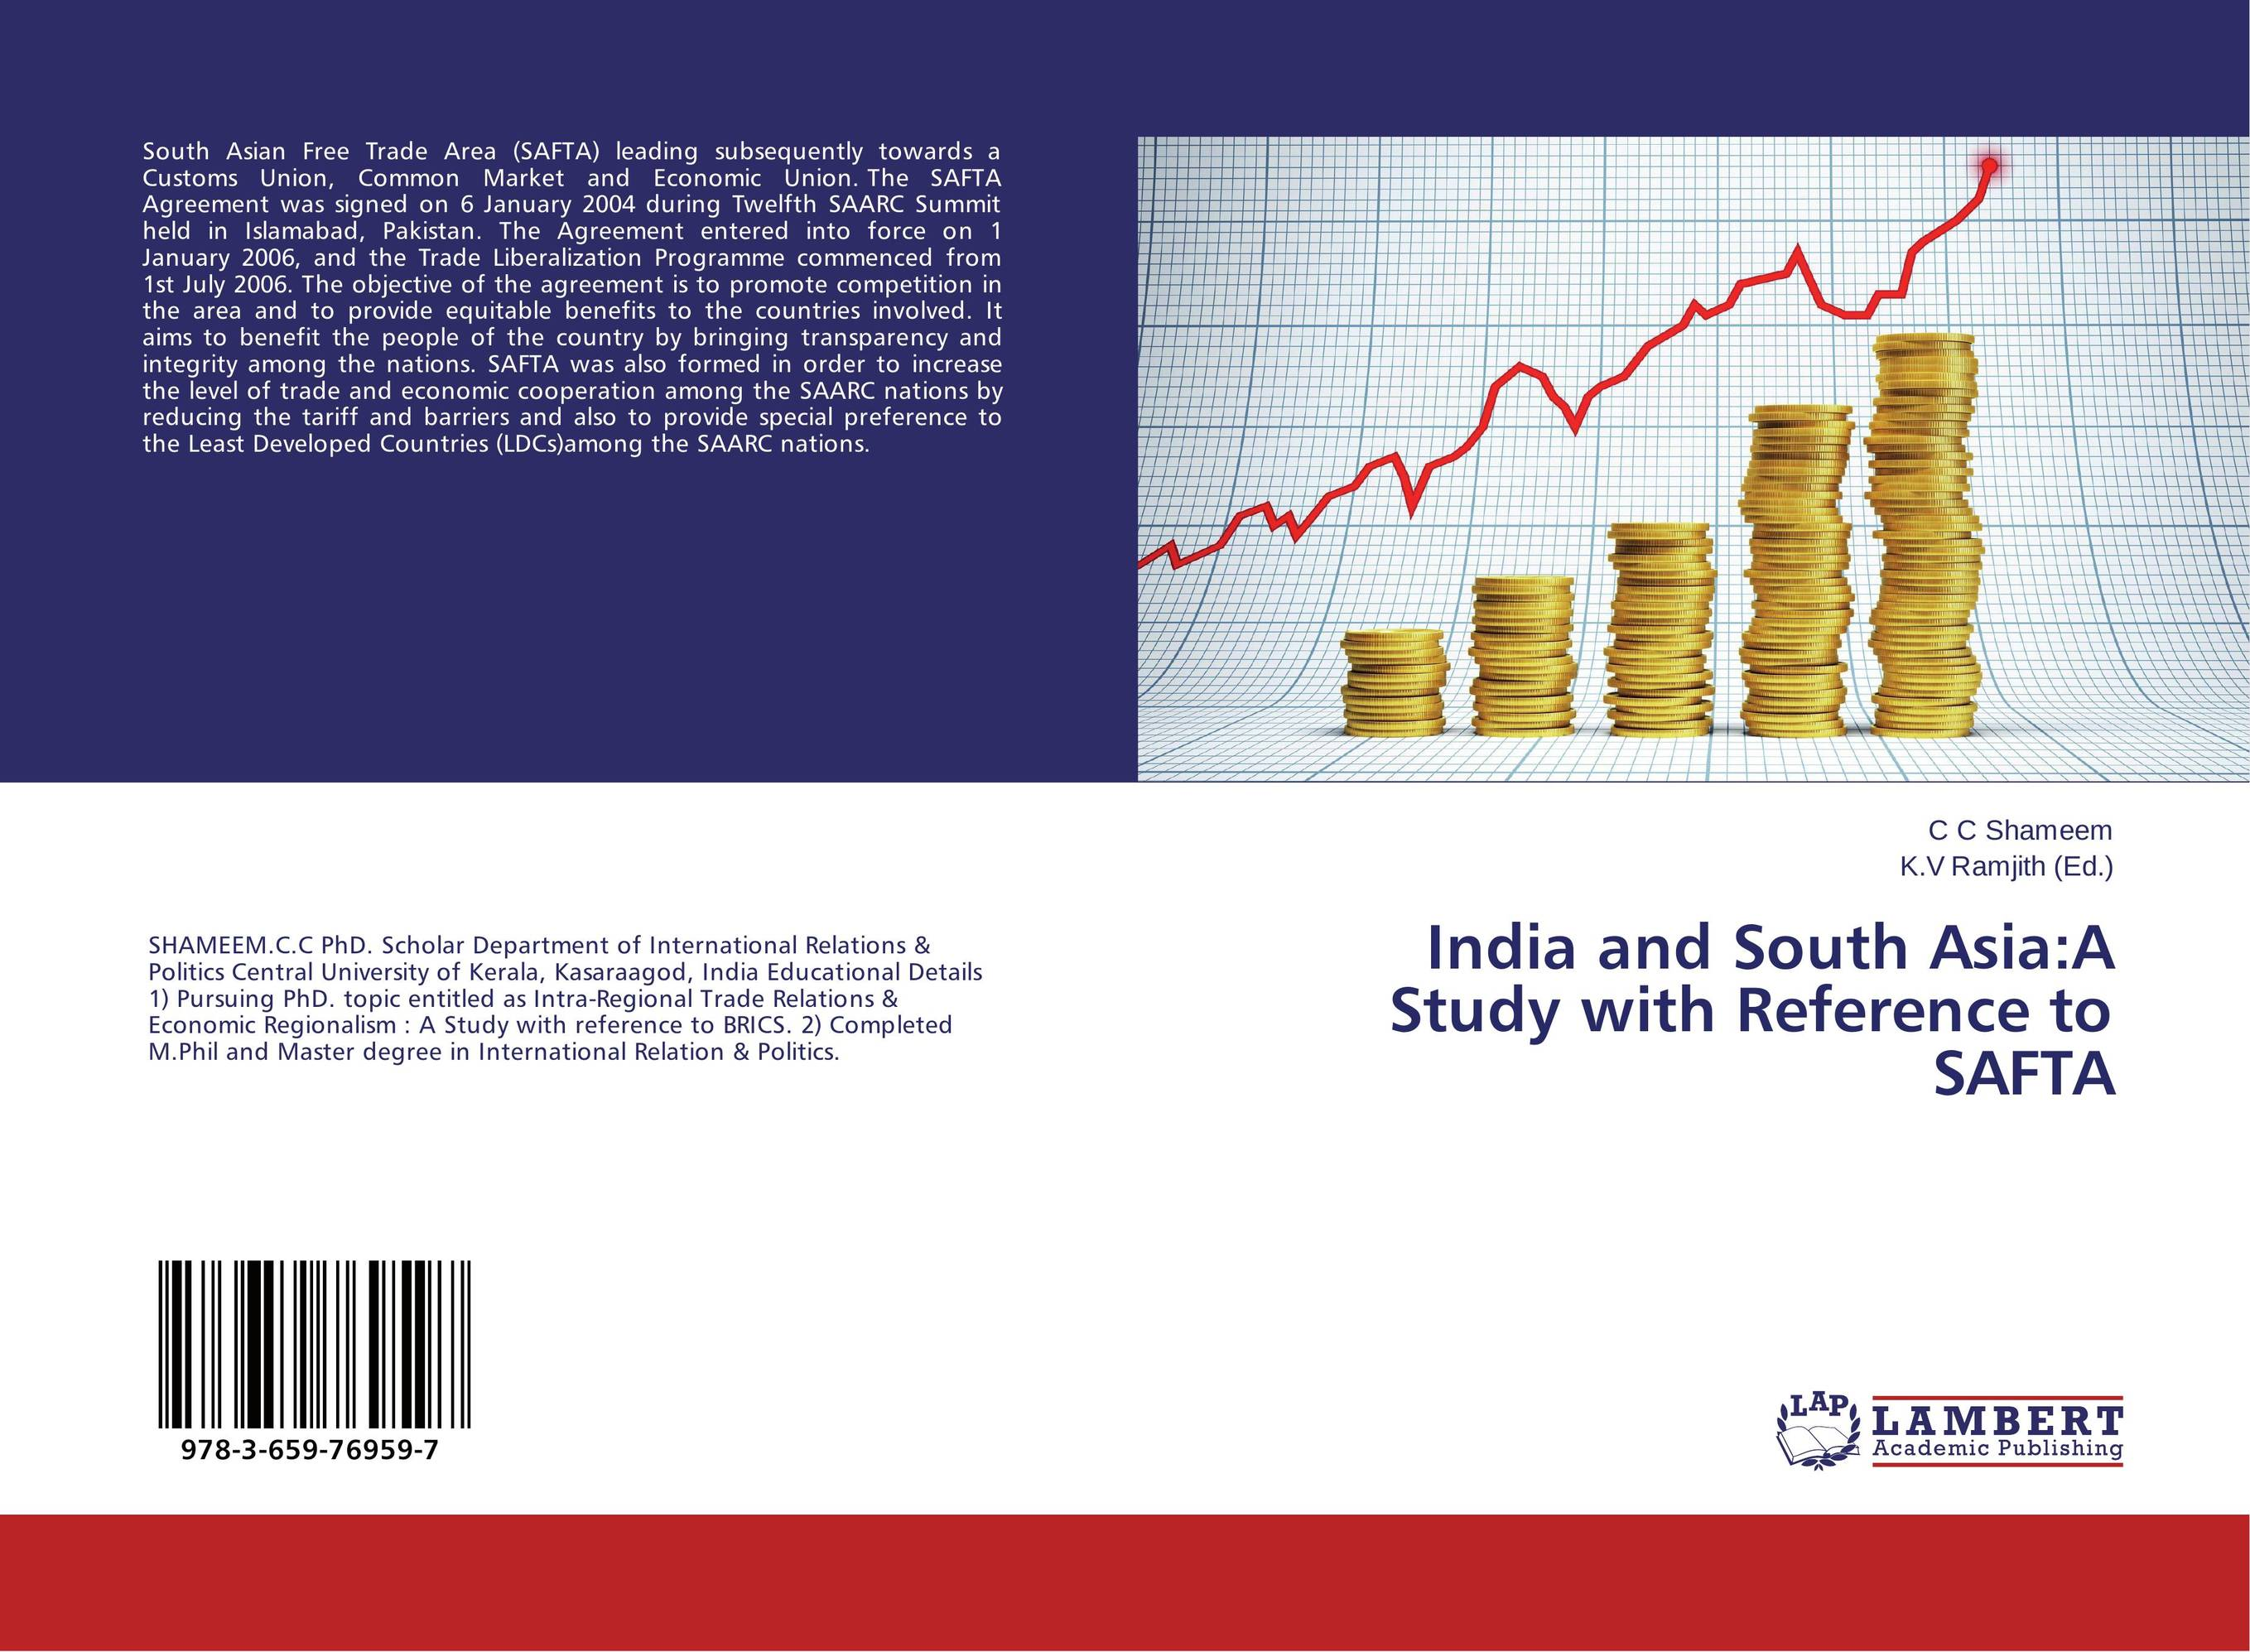 India and South Asia:A Study with Reference to SAFTA